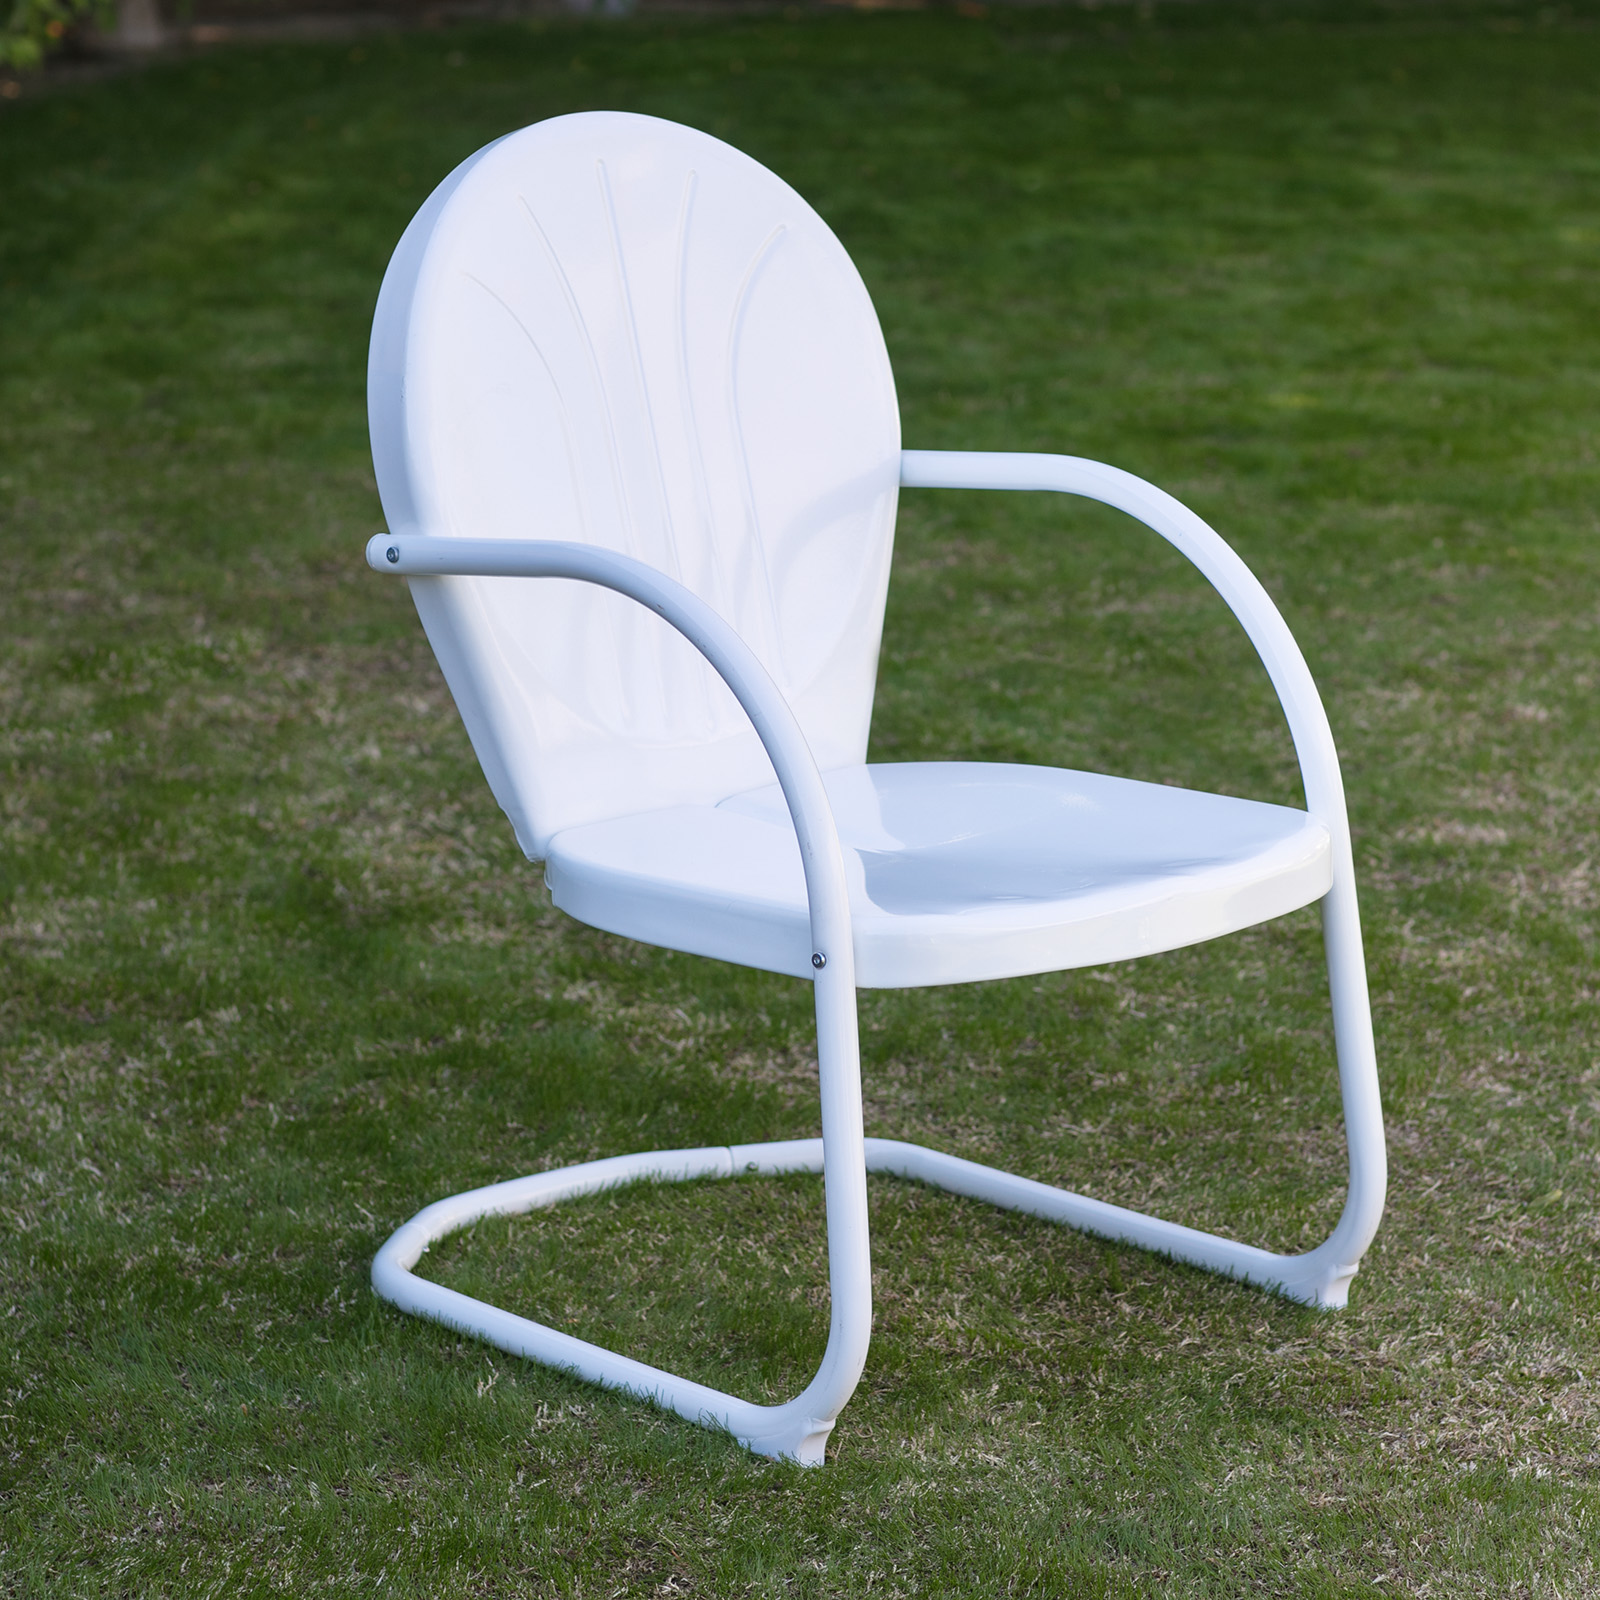 Coral Coast Vintage Metal Retro Chair Outdoor Lounge Chairs At Hayneedle